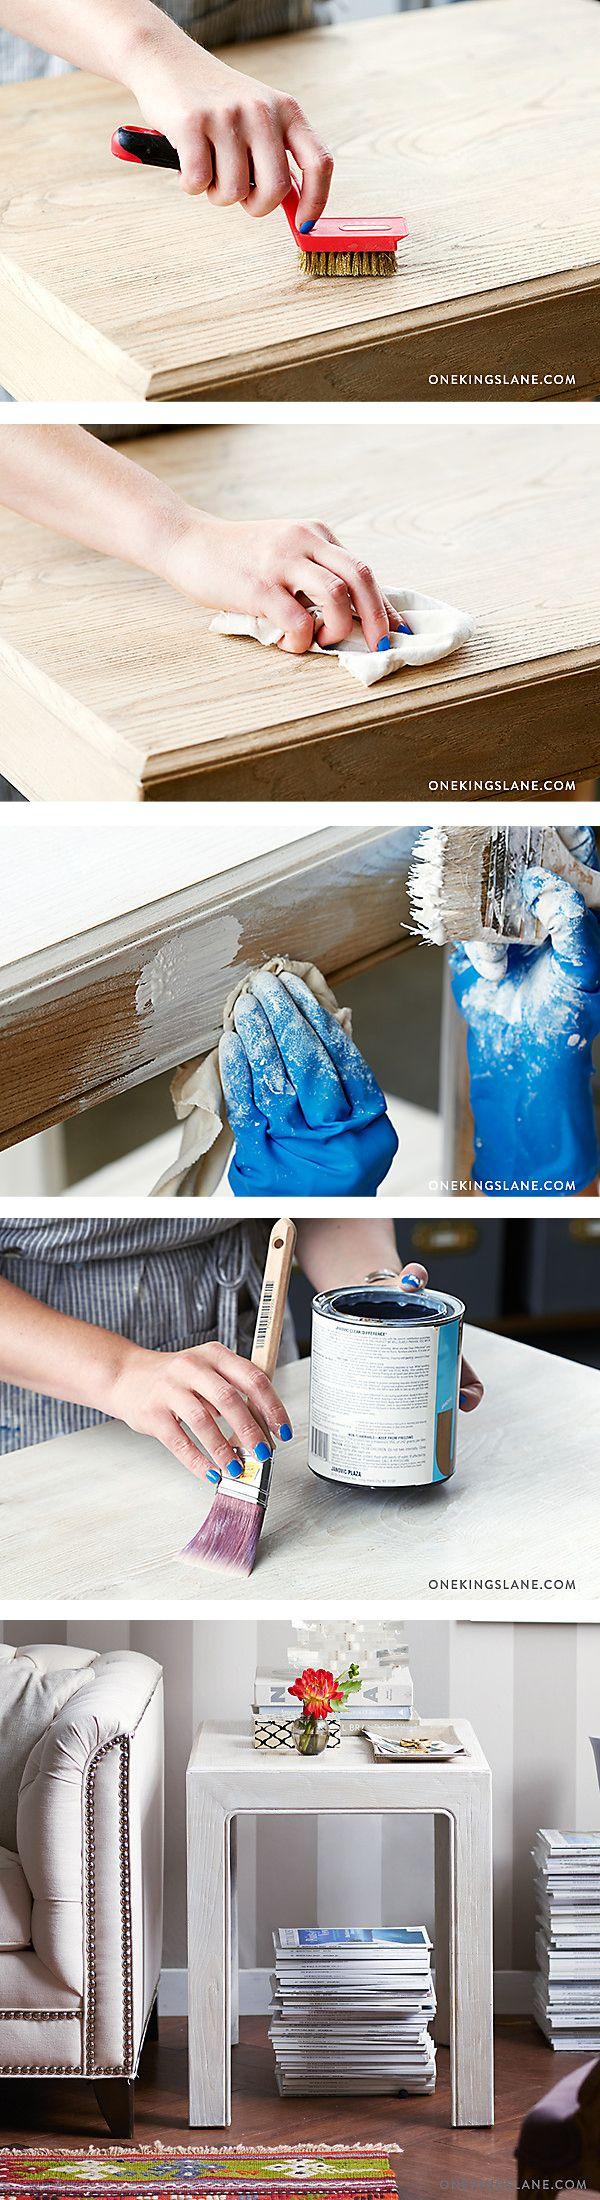 Learn how to whitewash furniture from our #WeekendDecorator: https://www.onekingslane.com/live-love-home/simplest-best-way-whitewash-wood-furniture/